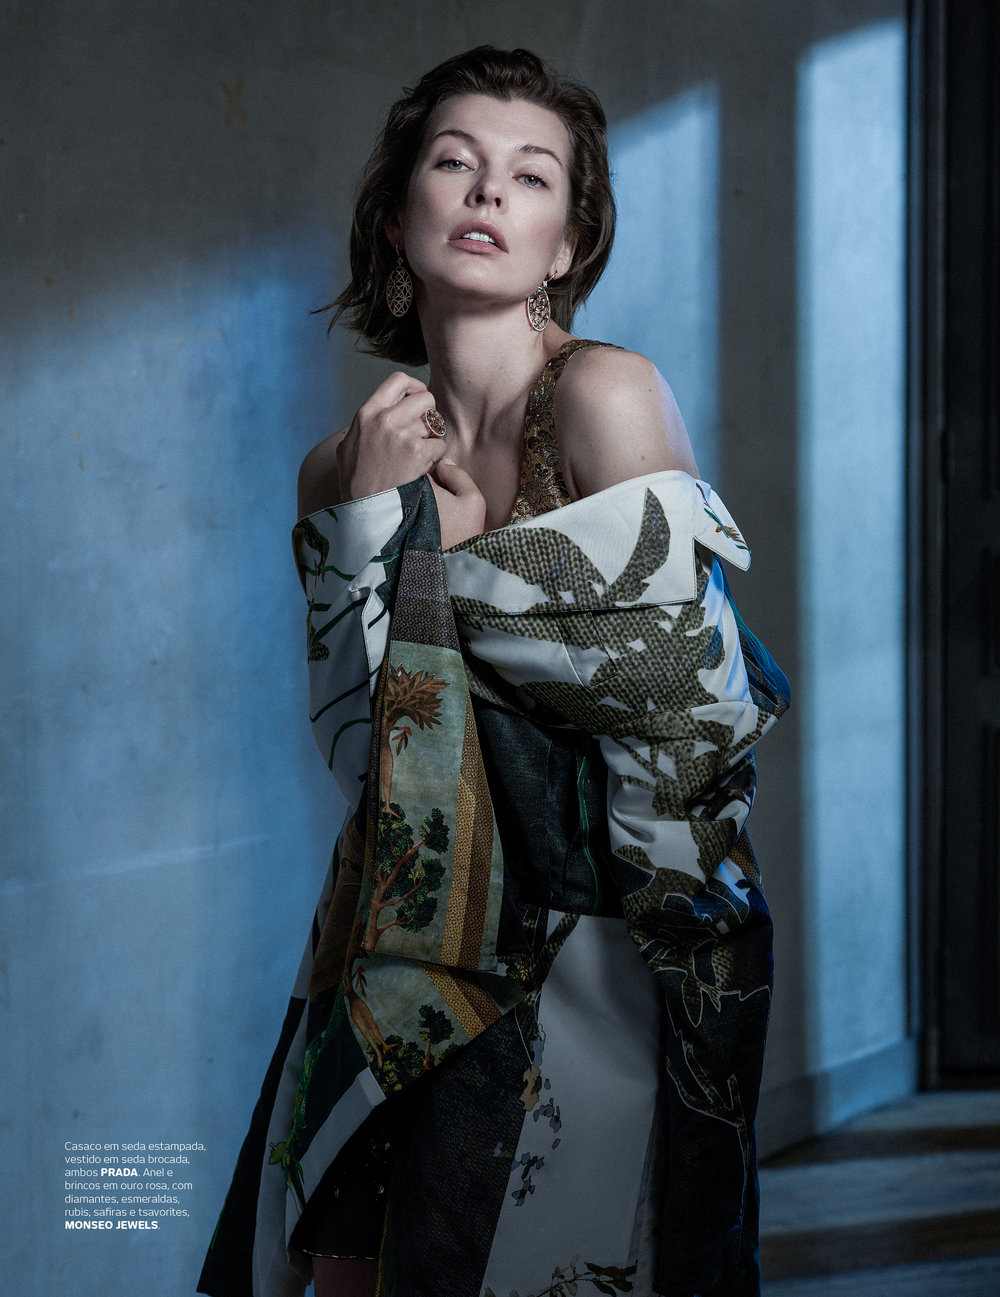 Portuguese Story collection featured on Vogue Portugal with Milla Jovovich